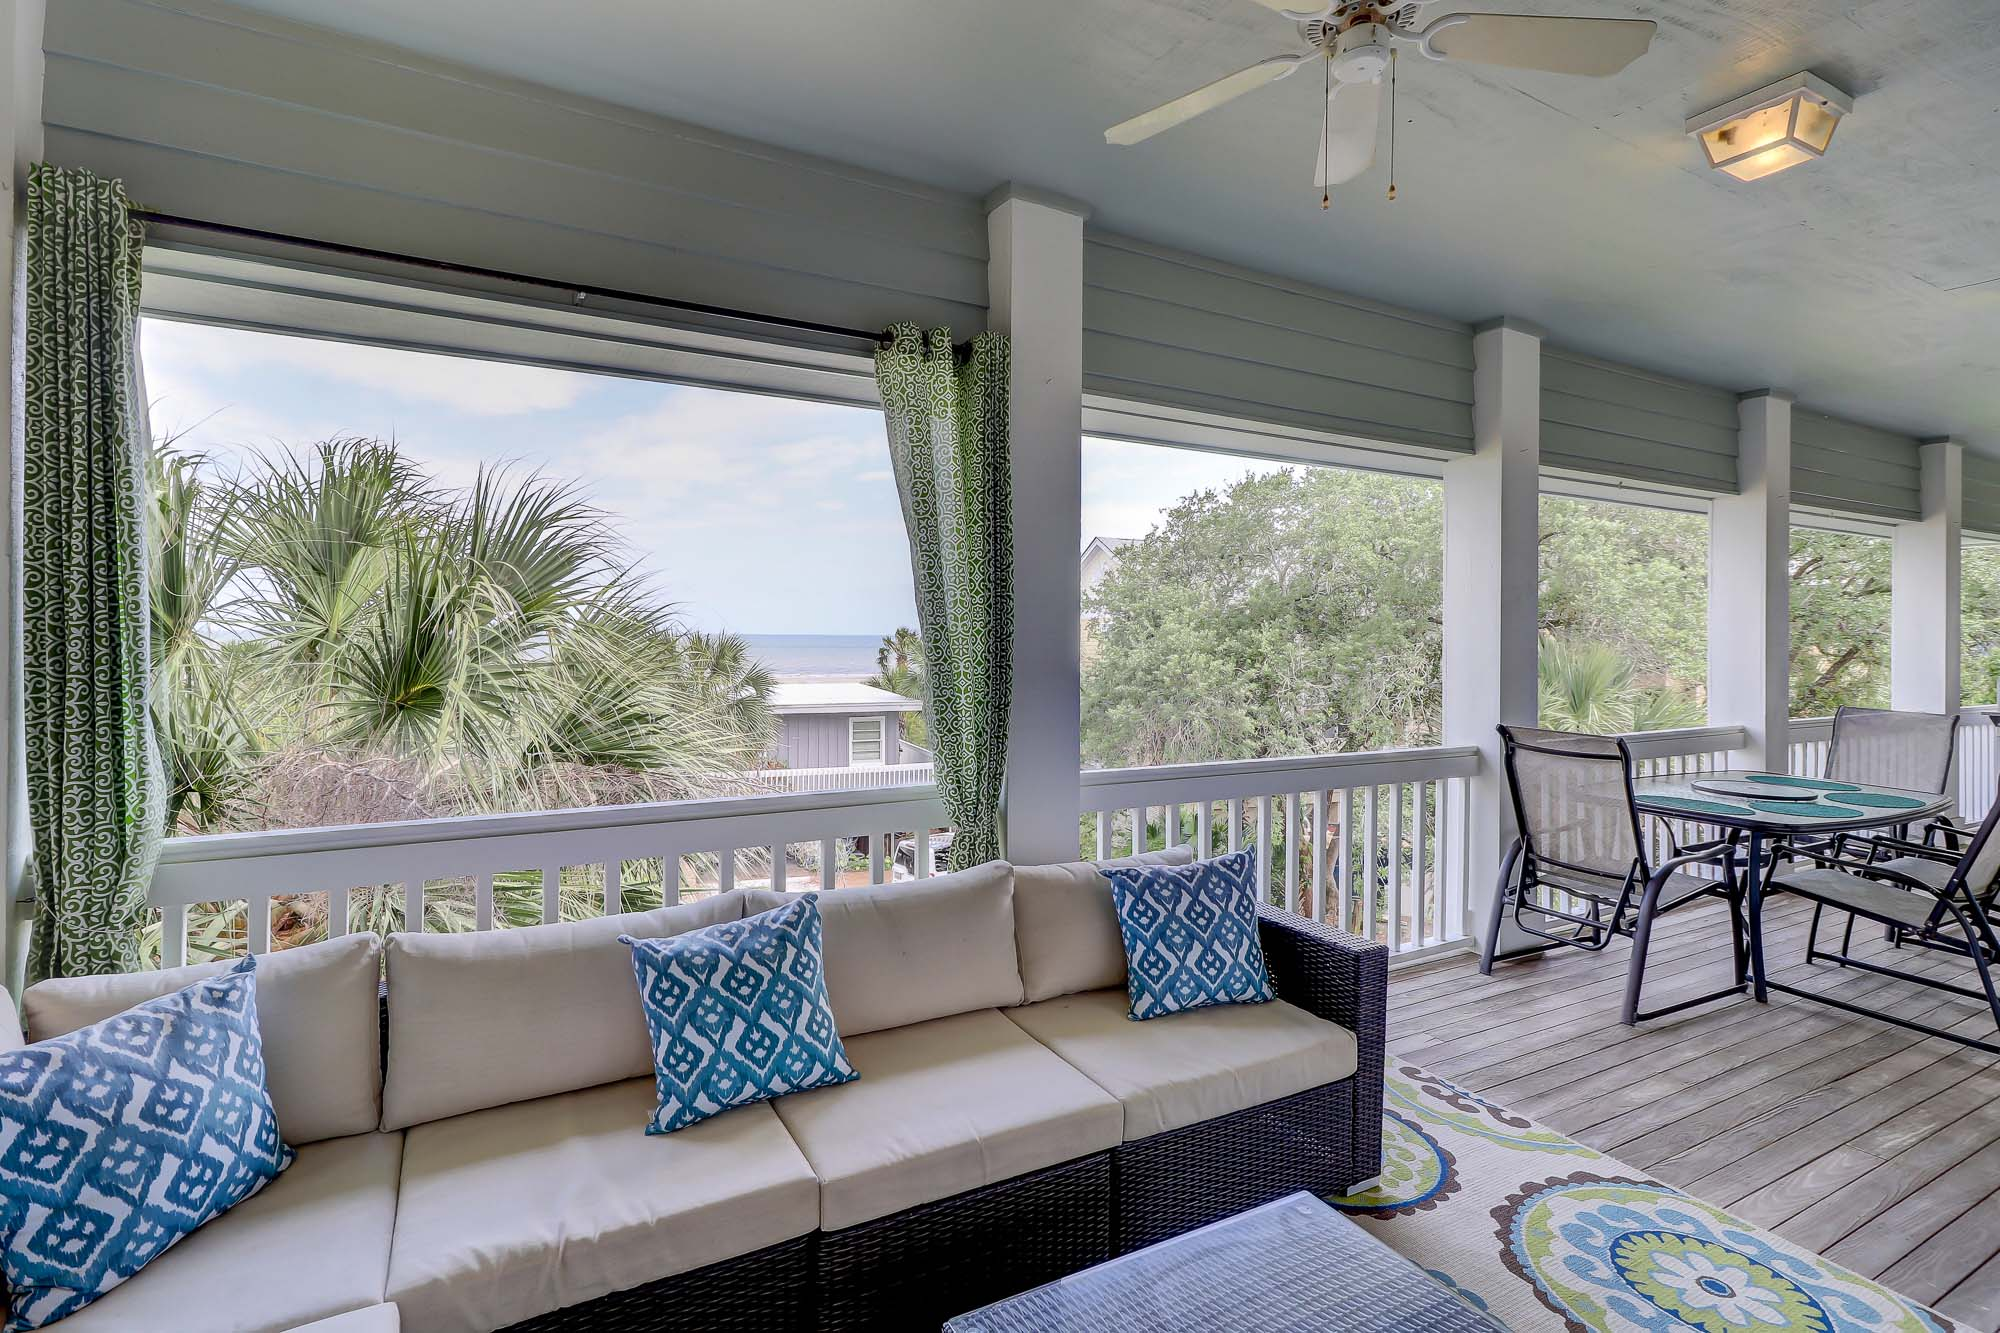 Outdoor living is beautiful on Hilton Head Island and at Dune Lane 28, this is no exception. Large sectional, TV, dining table, Chaise loungers and grill make for a great way to relax and stare at the ocean